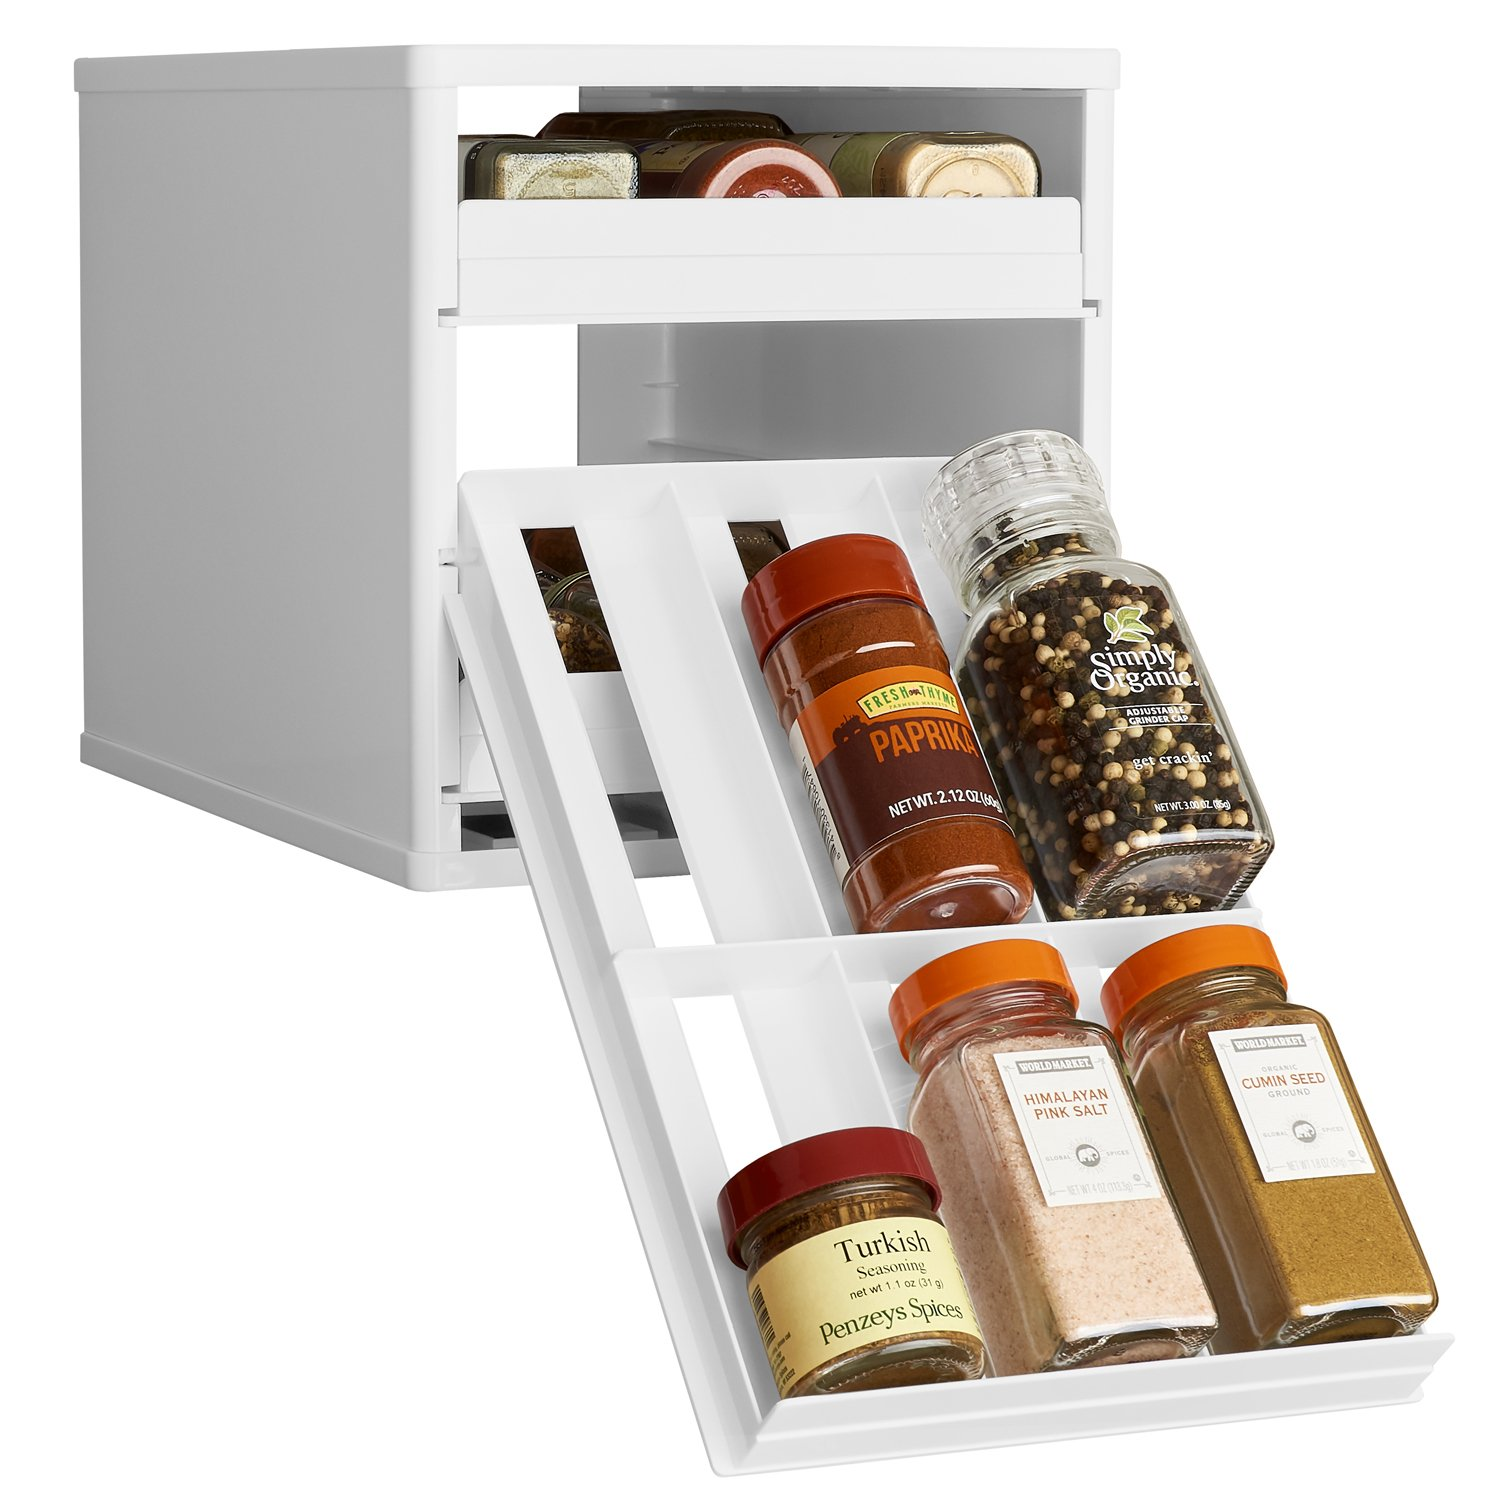 YouCopia Original SpiceStack 18-Bottle Spice Organizer with Universal Drawers, White by YouCopia